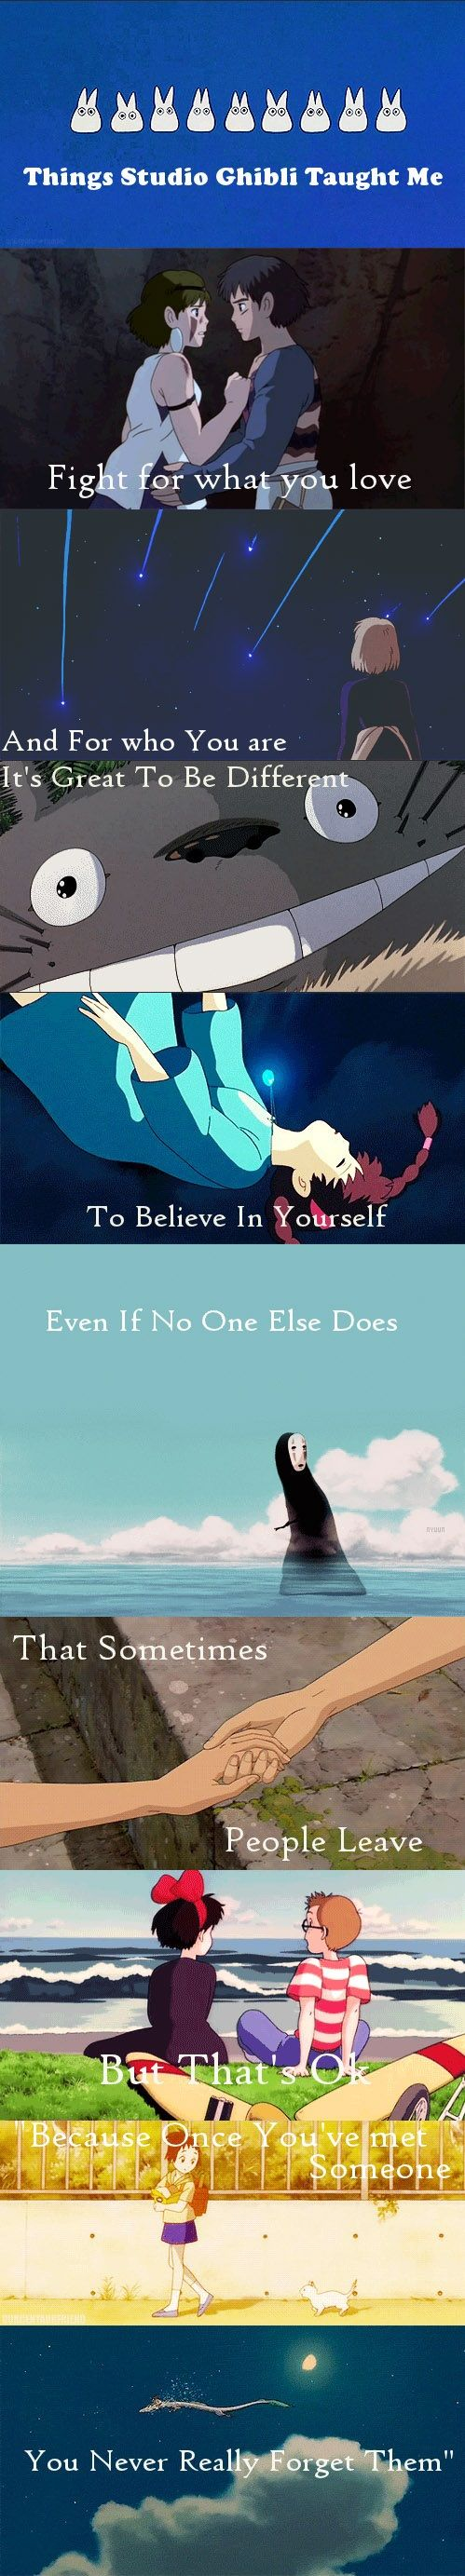 Spirited Away Quotes 11 Best Quotes Images On Pinterest  Words Quote And My Heart